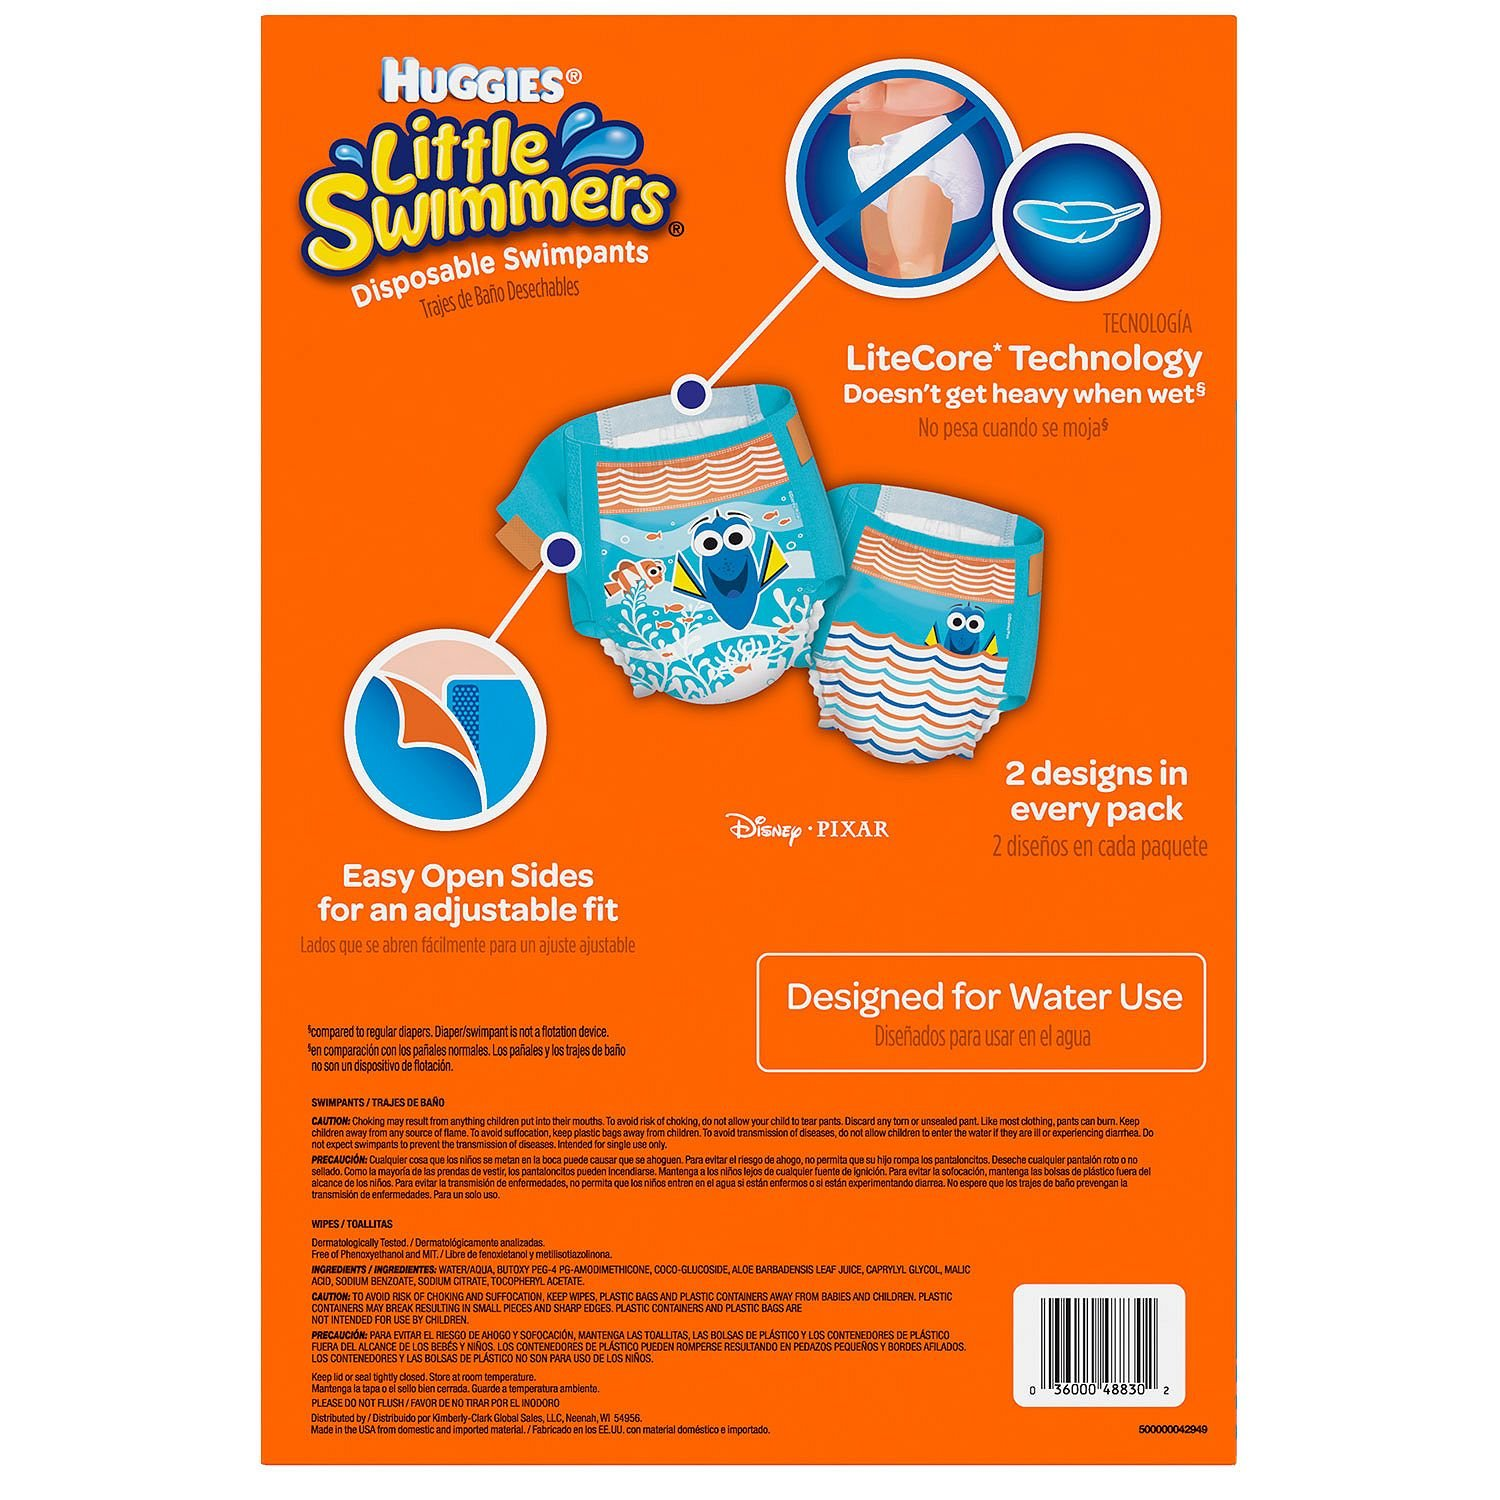 Amazon.com: Huggies Little Swimmers Swimpants Medium (23-34lbs),27 CT, Bonus 56 Wipes Included: Health & Personal Care